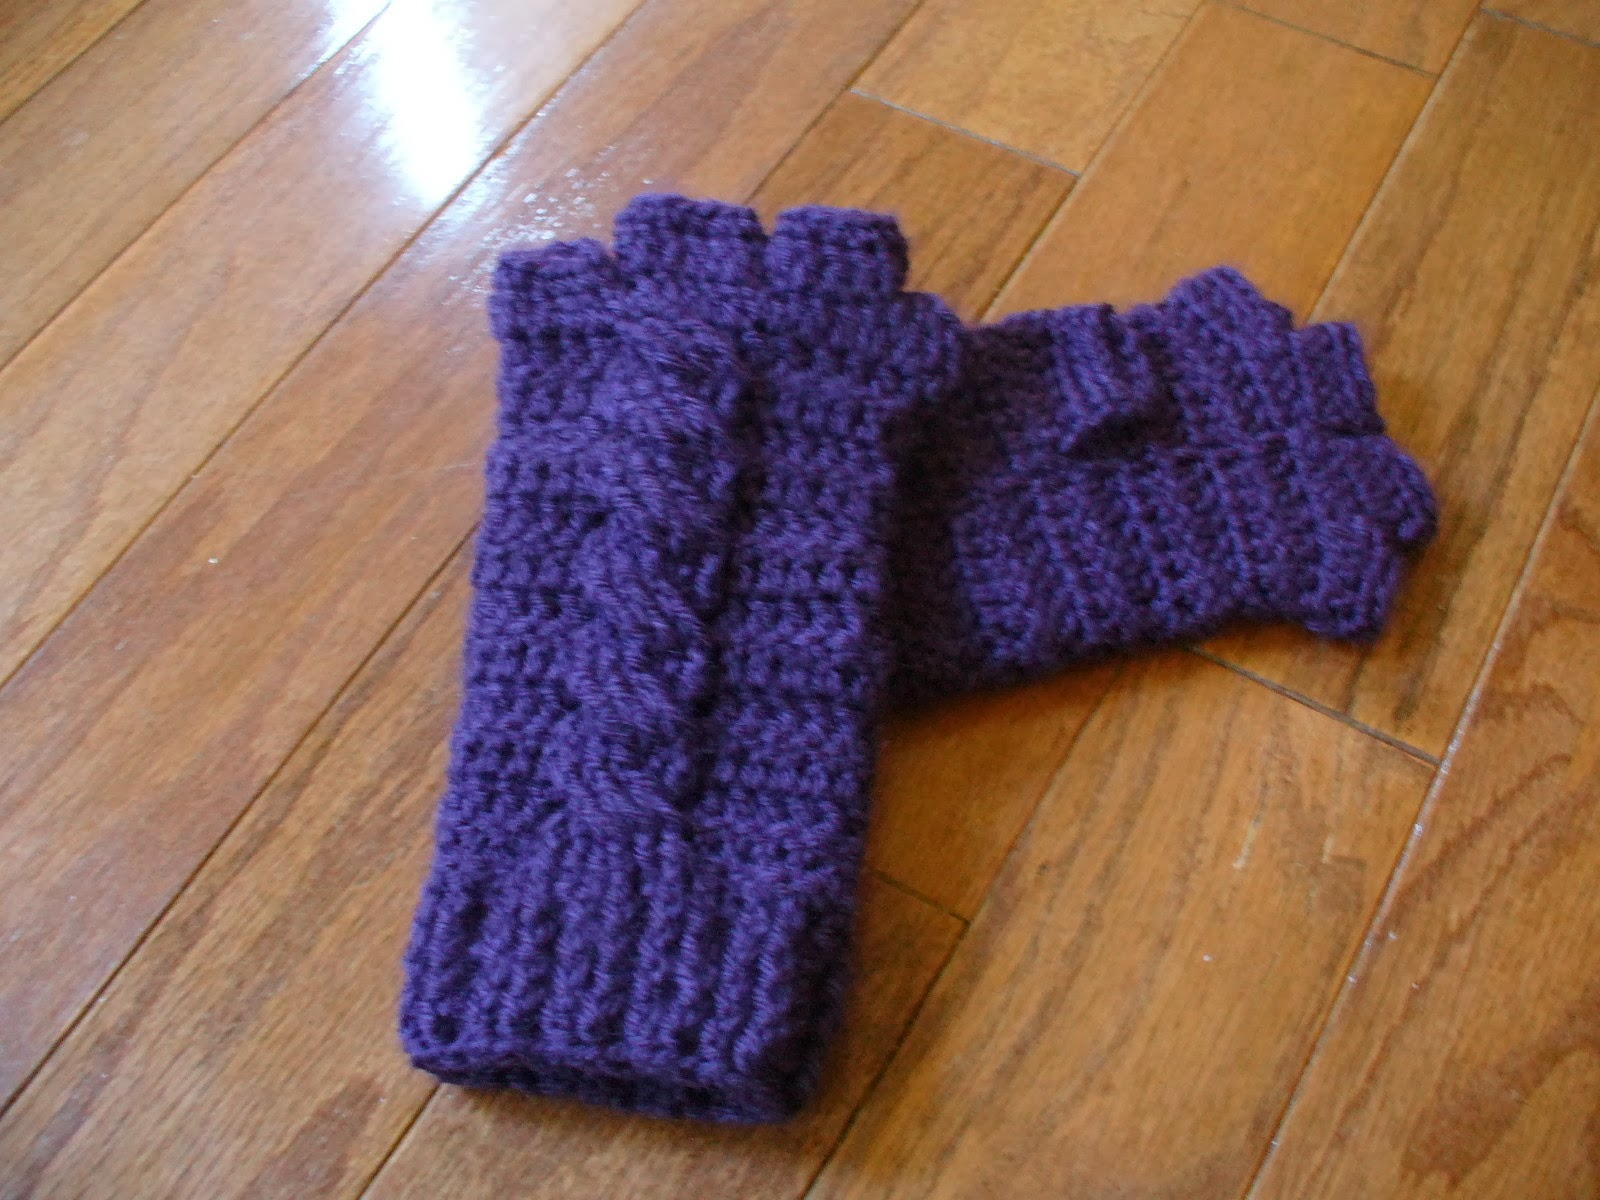 Sanity by Stitches: First pair of fingerless gloves